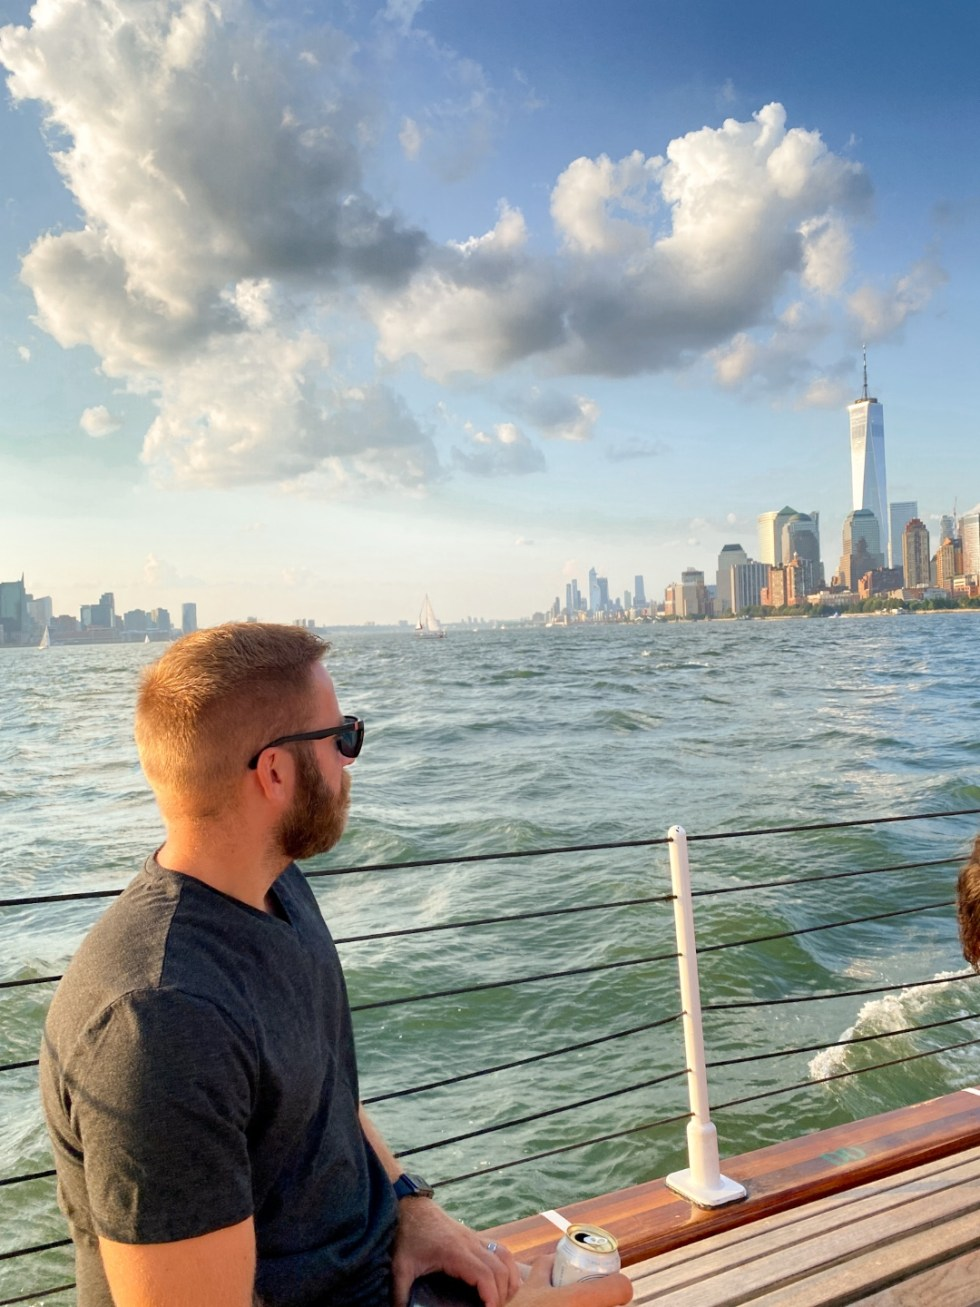 NYC Summer Weekend: Things to Do in NYC in the Summer - I'm Fixin' To - @imfixintoblog   NYC Summer Weekend by popular NC travel blog, I'm Fixin' To: image of a man sitting on a boat and looking out at the NYC skyline.